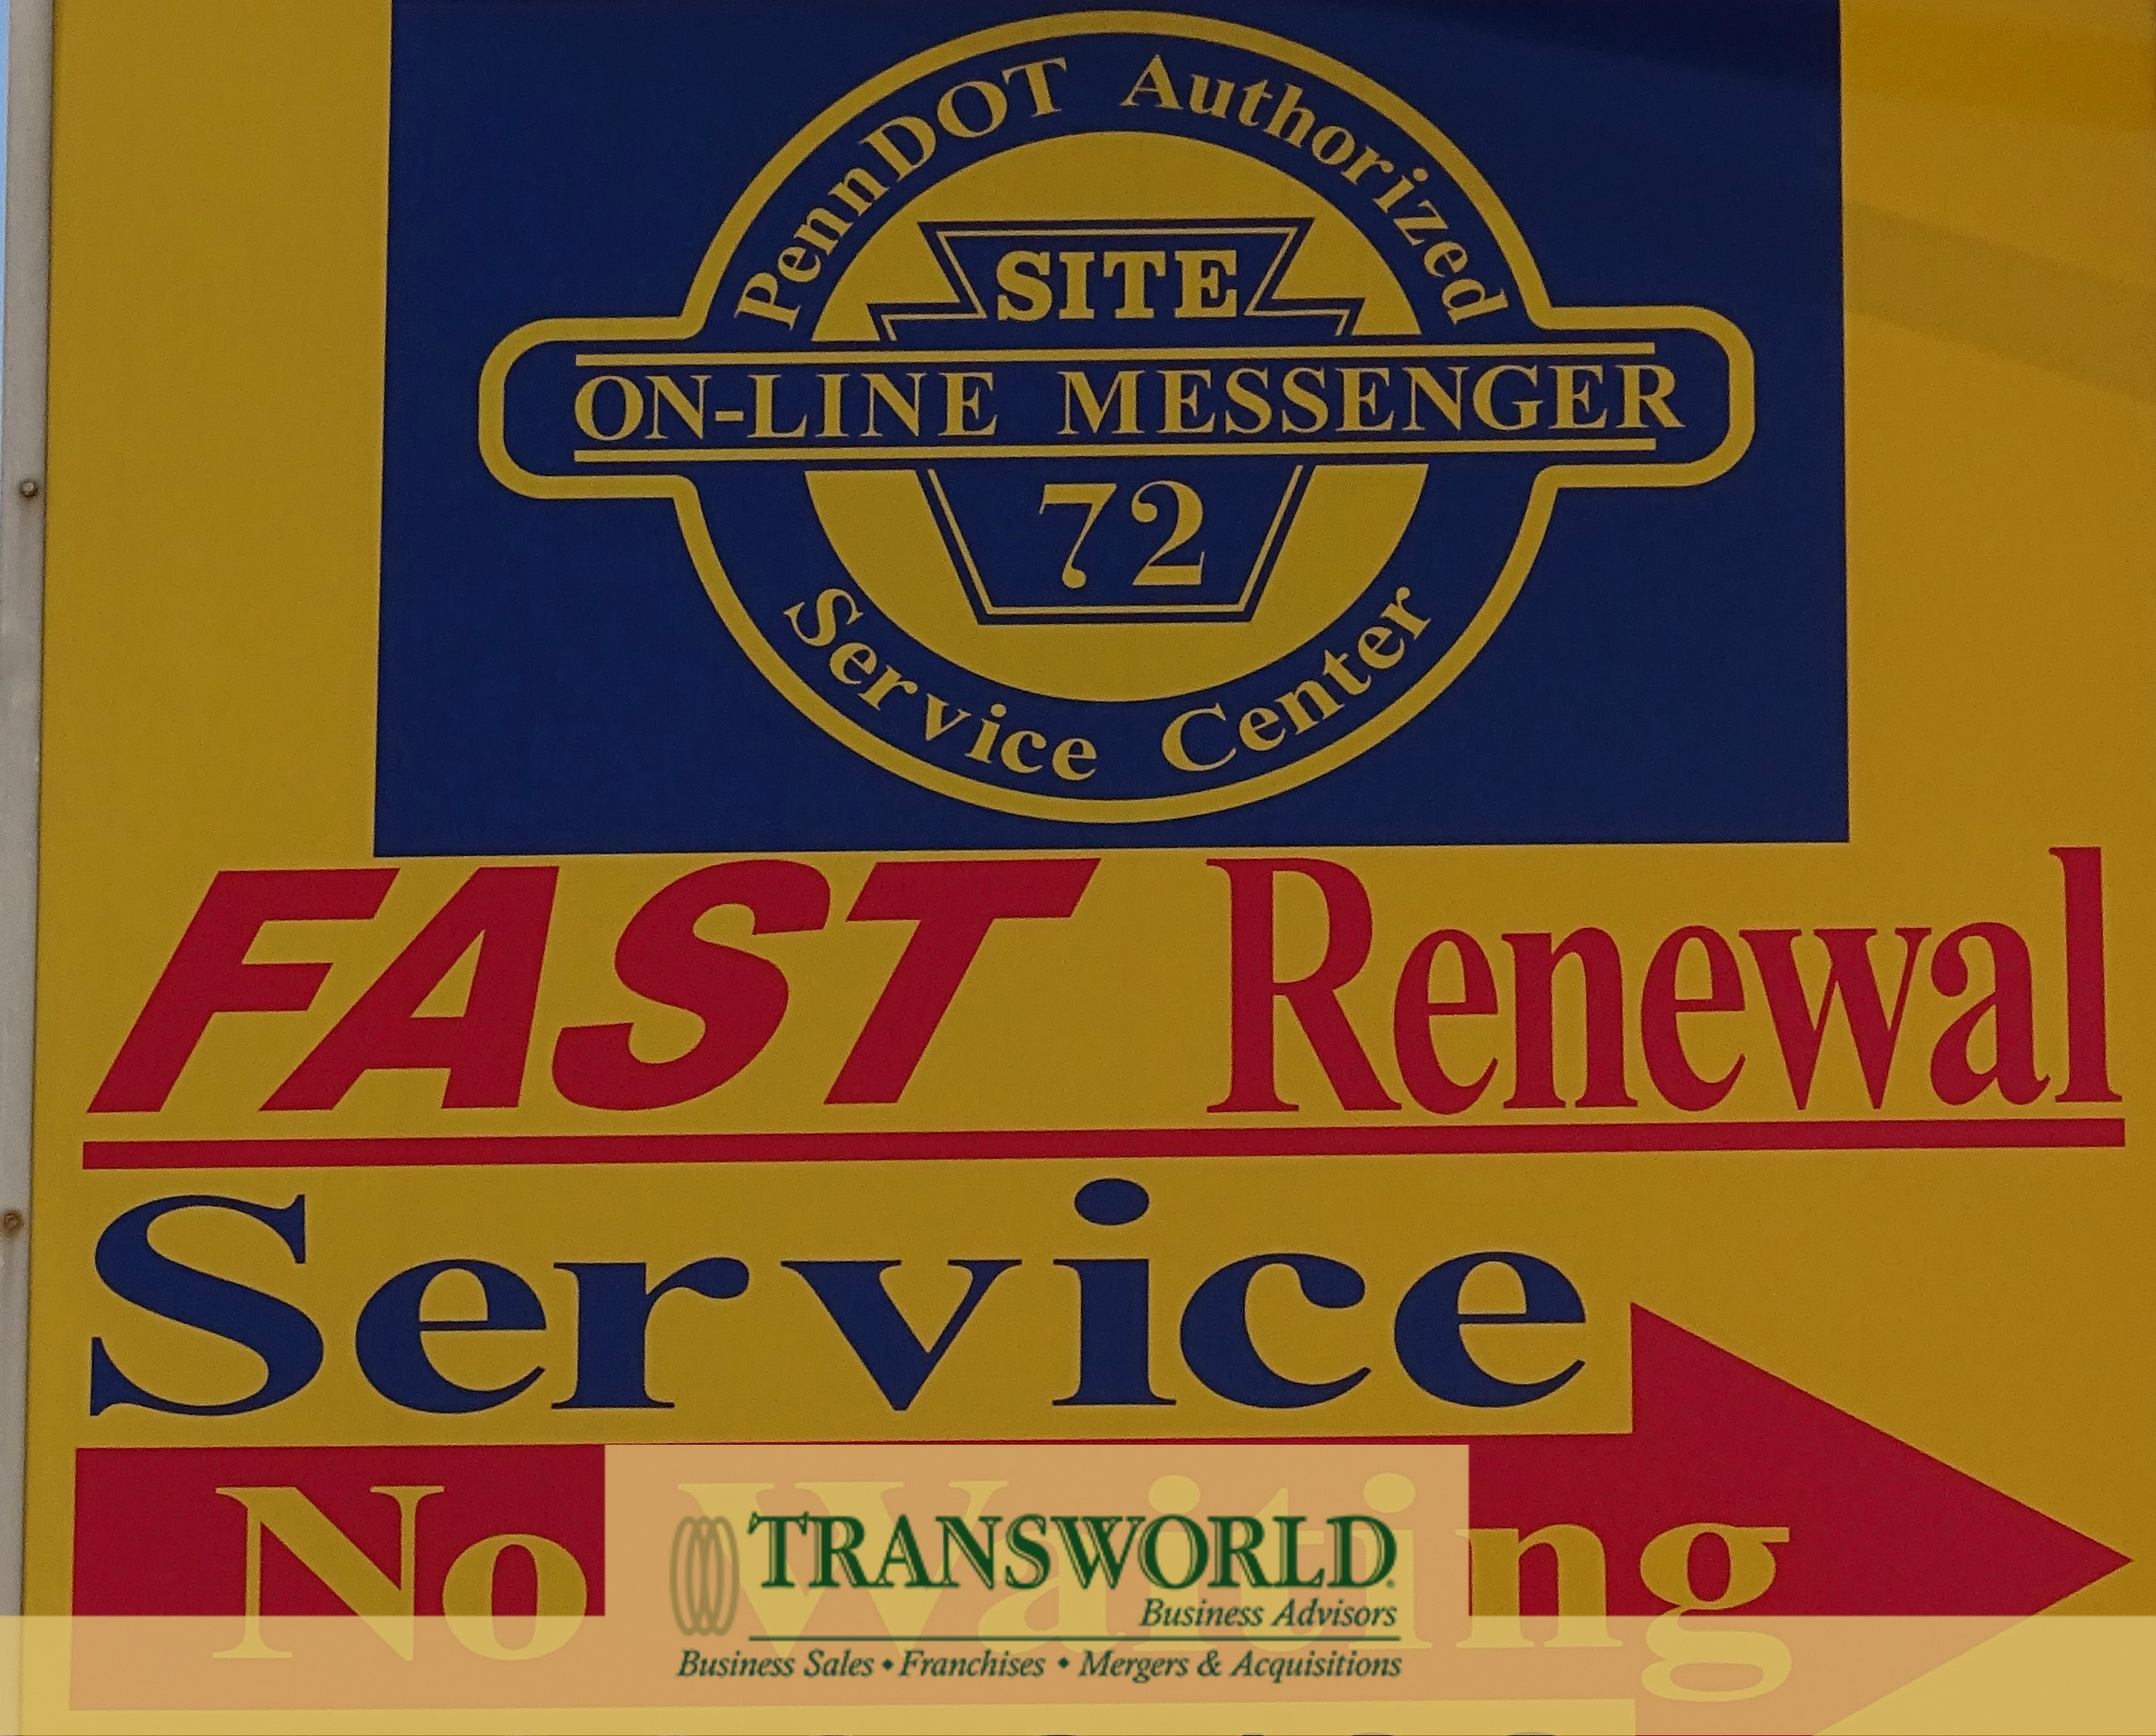 PennDot Franchised Cash Auto Service Business